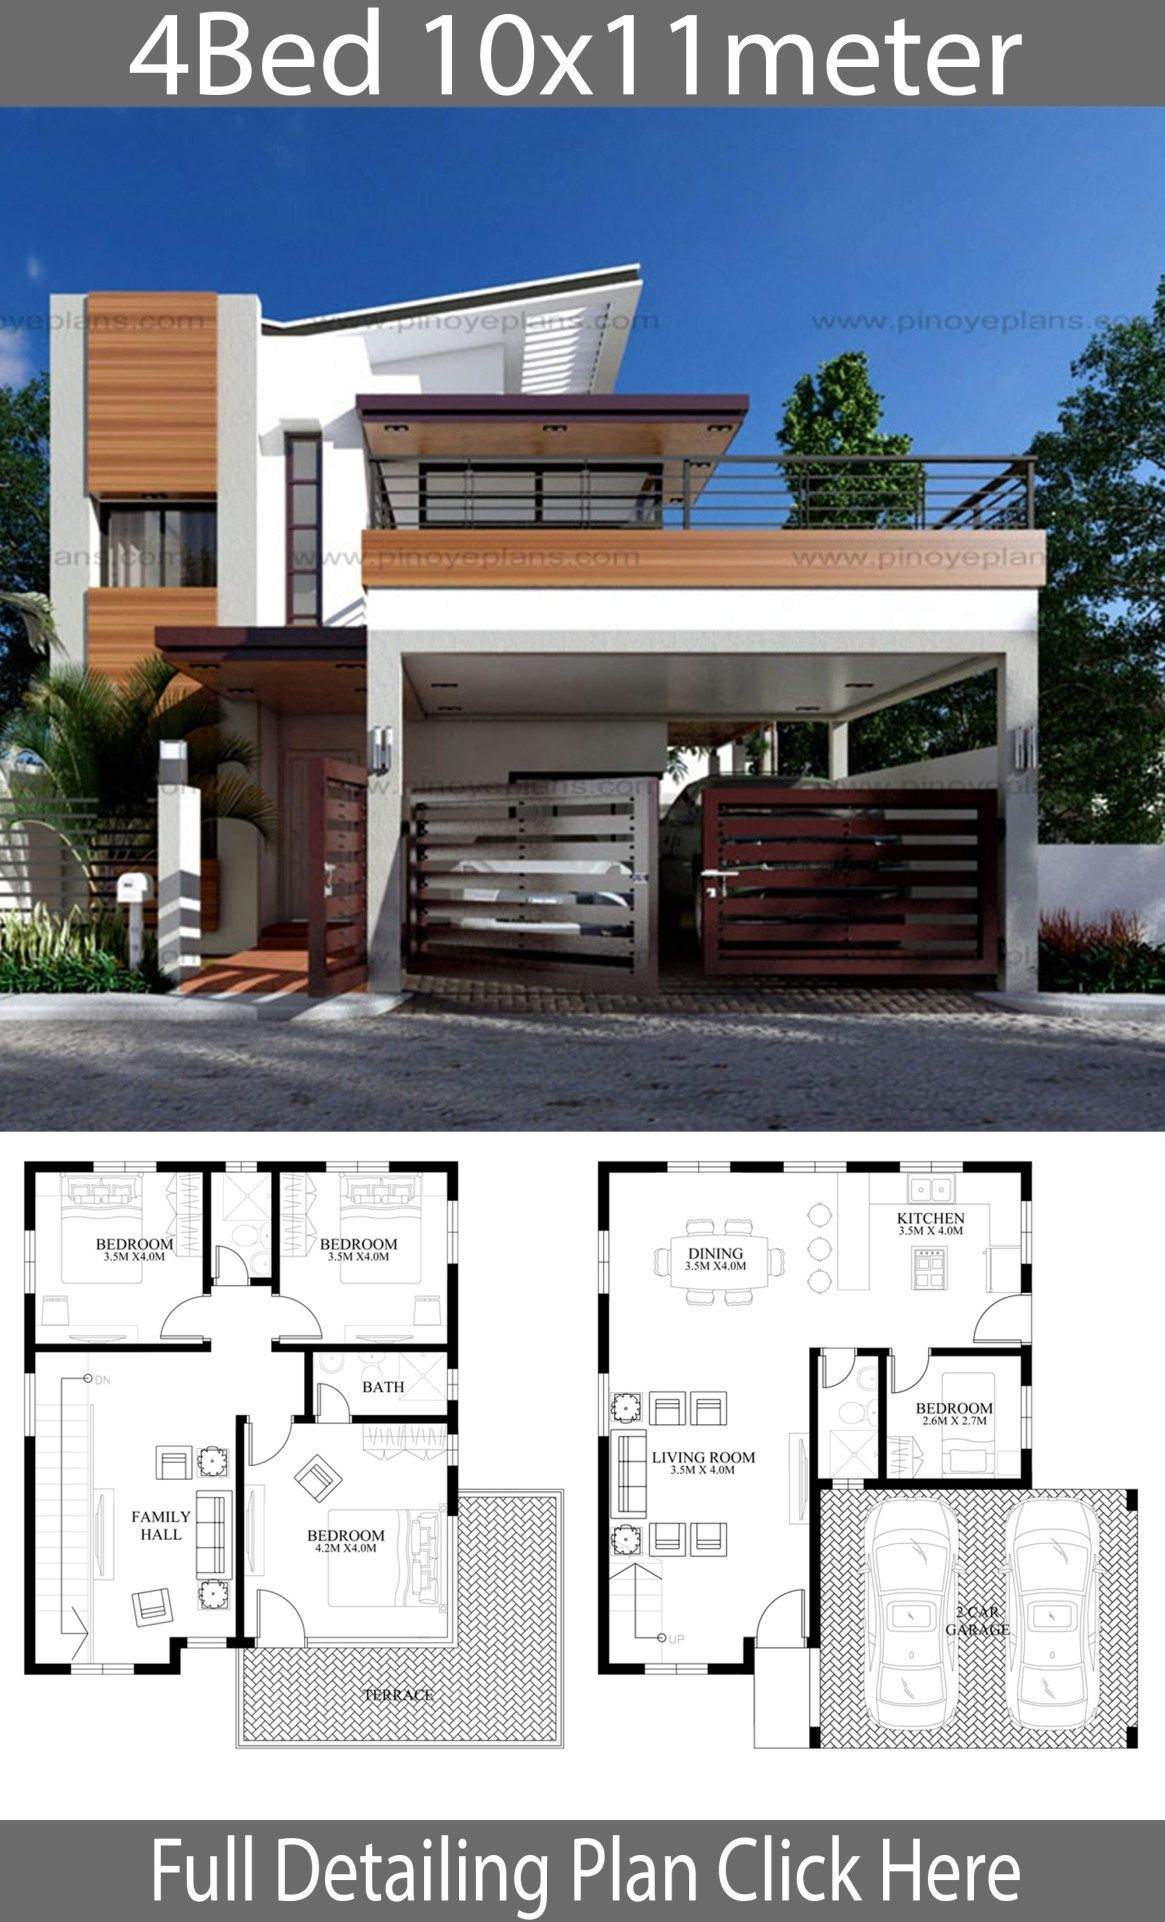 Modern Home Design 10x11m With 4 Bedrooms Home Ideas In 2020 Duplex House Design 2 Storey House Design House Architecture Design